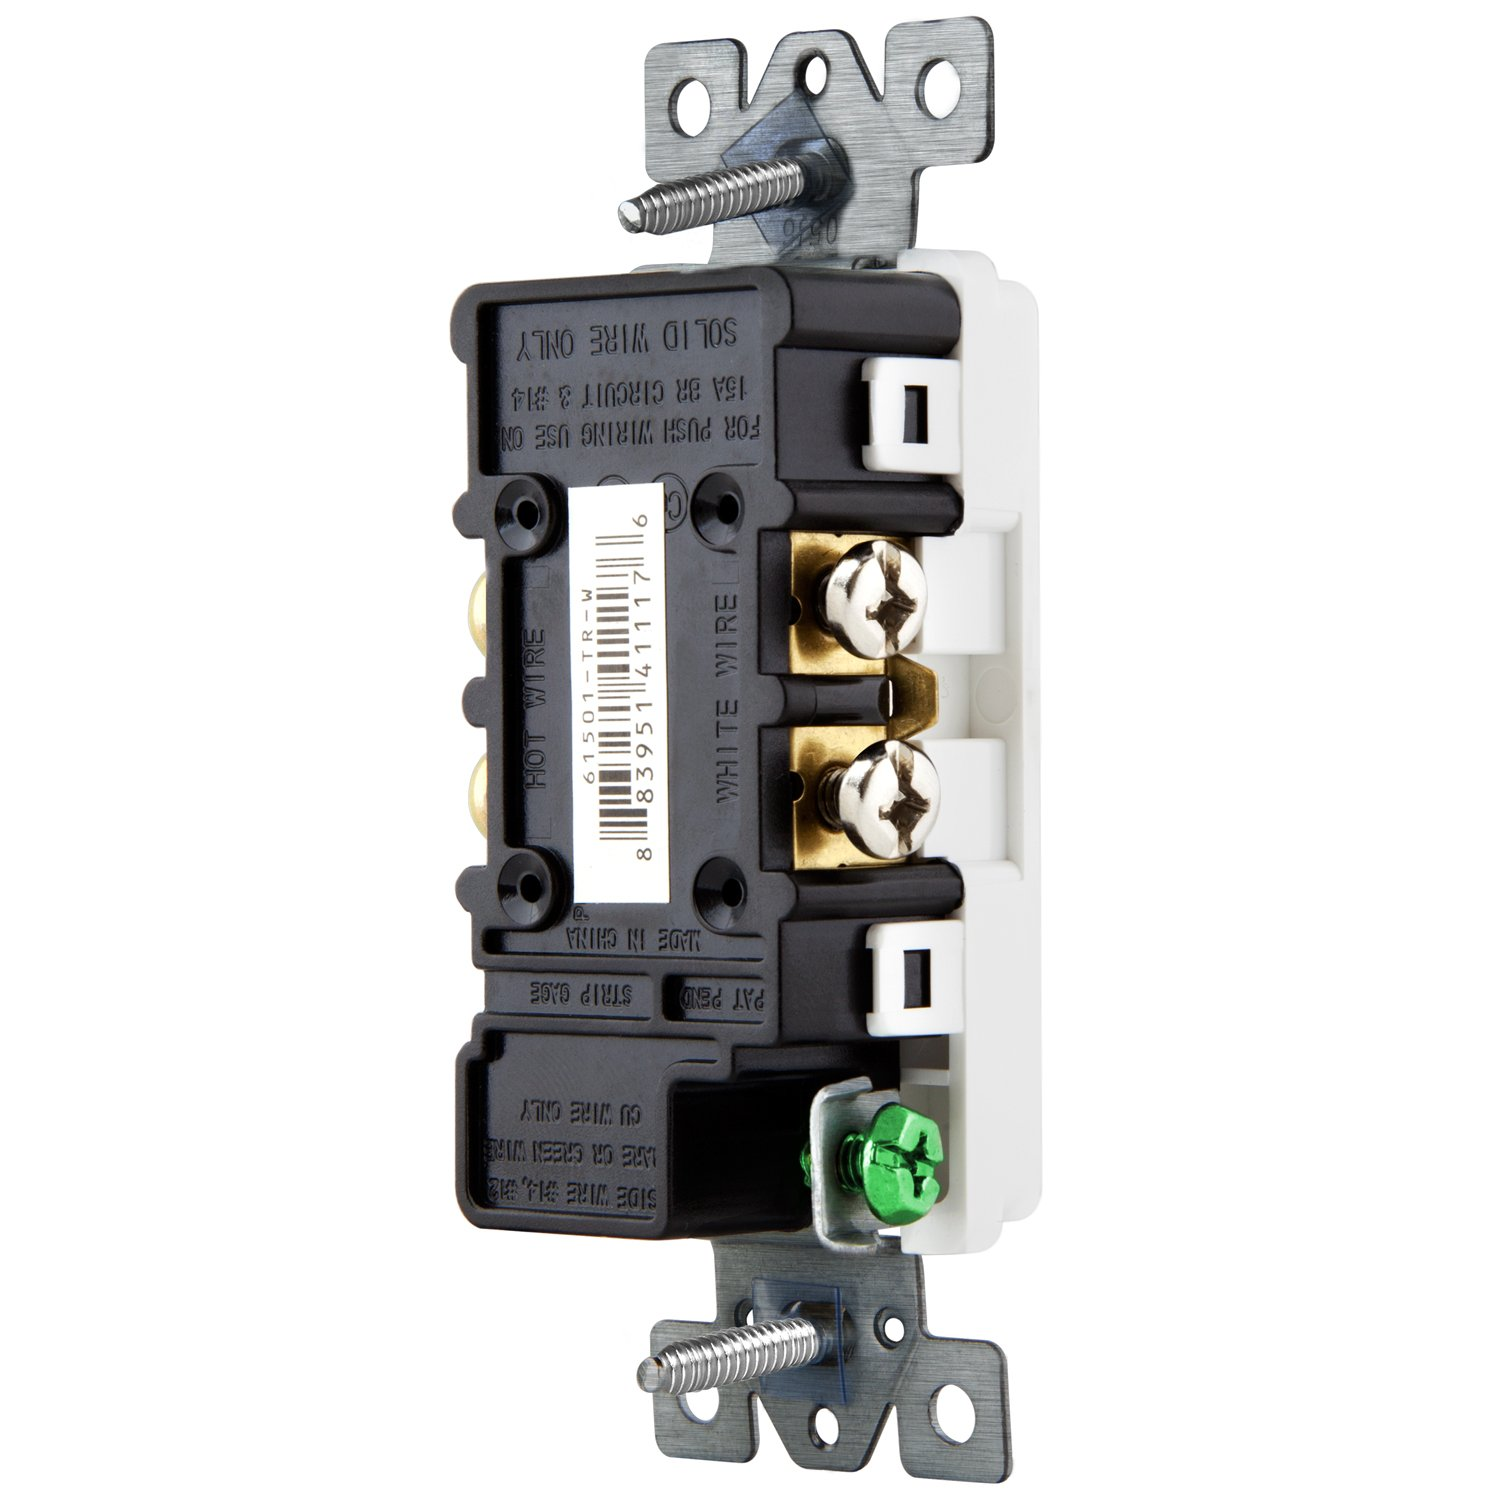 Enerlites Combination Switch And Outlet 68625 Commercial Wiring Receptacle Combo Residential Paddle With